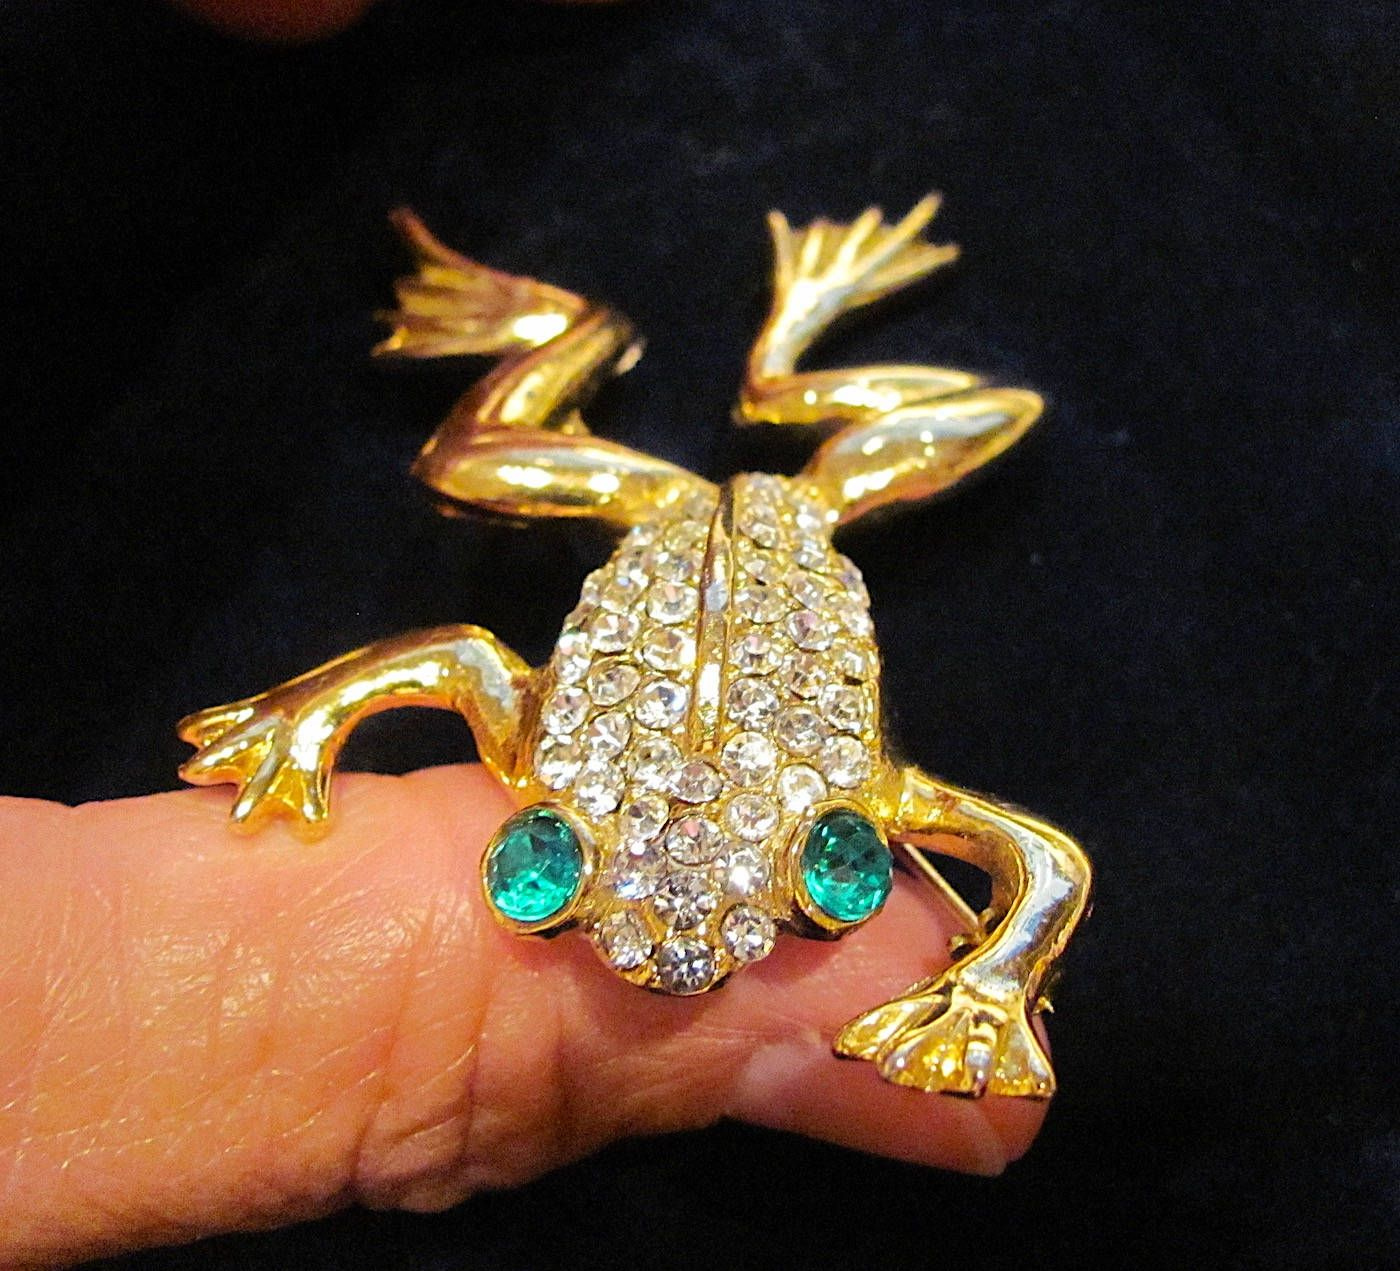 179dd8310 Vintage Clear Swarovski Crystals Green Rhinestones Polished Gold Tone Large  Figural Frog Brooch Pin Women's Costume Jewelry Unsigned Beauty by ...